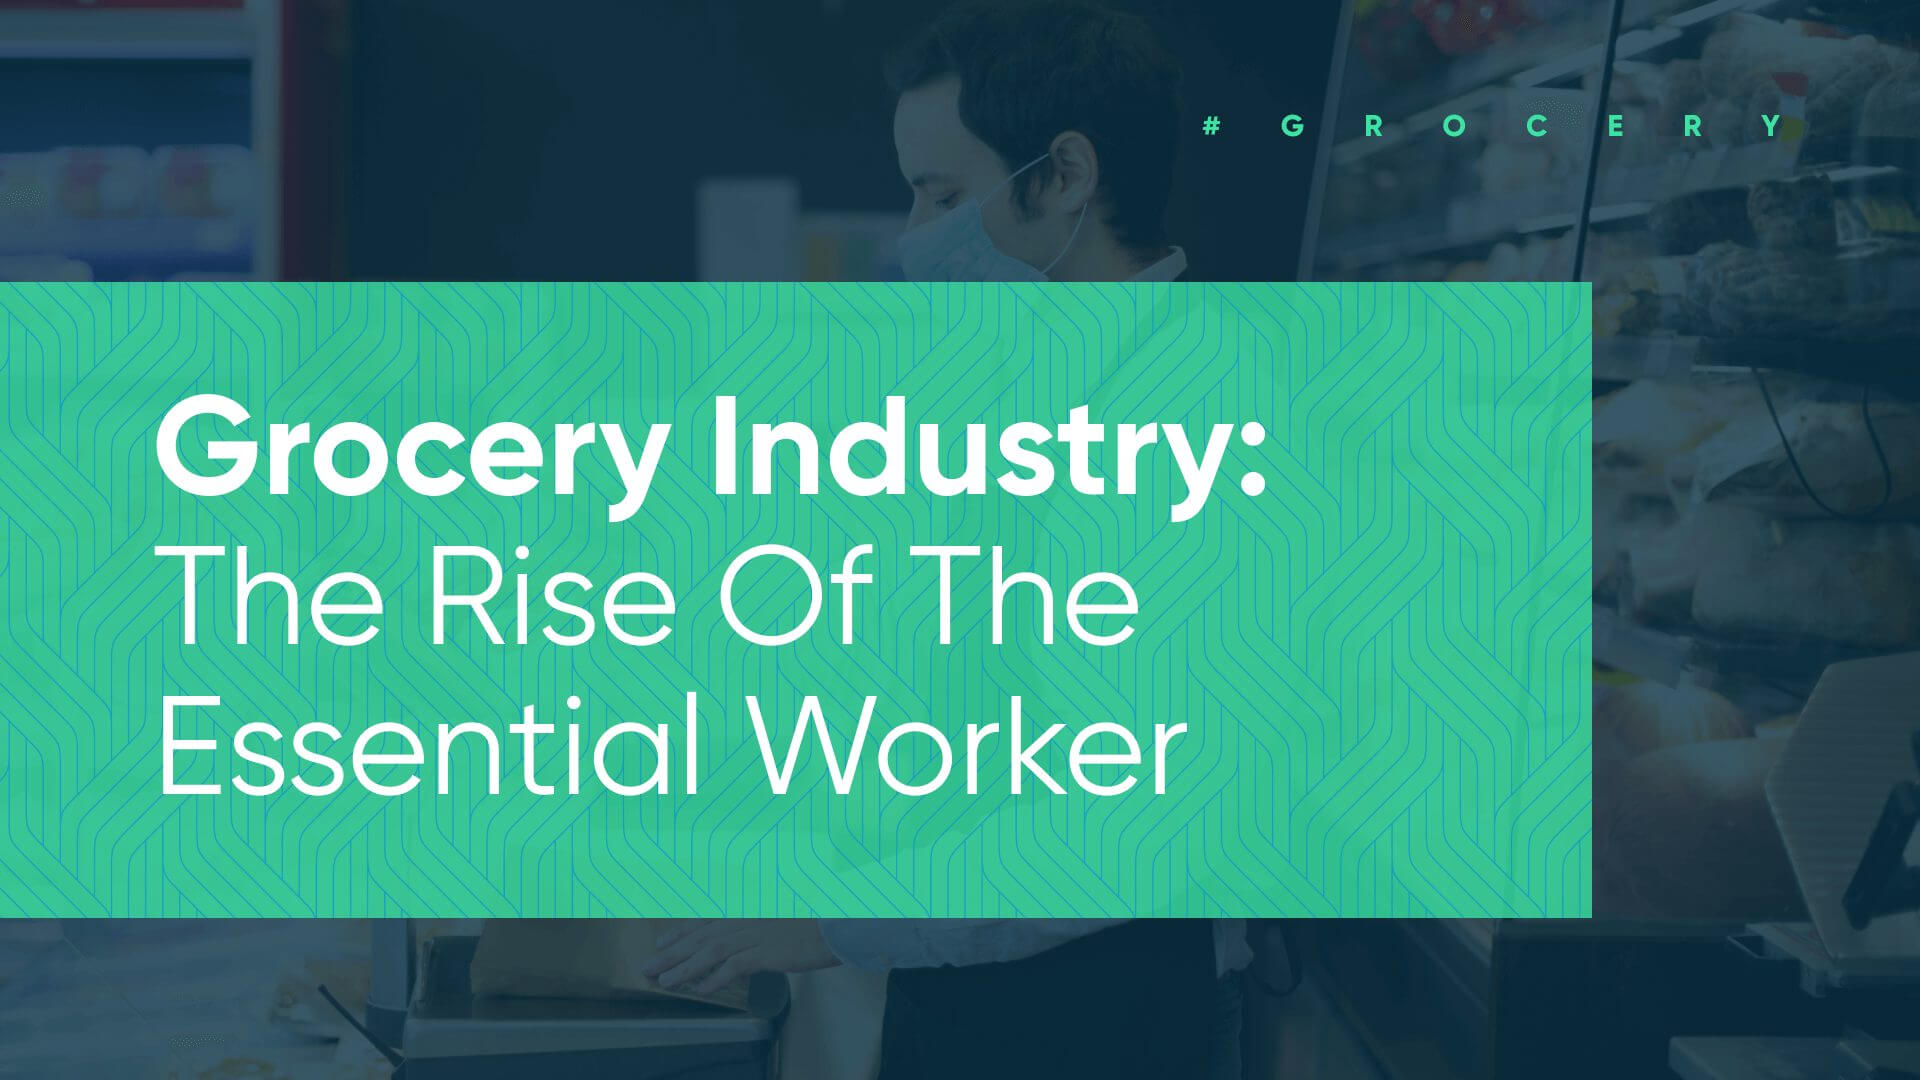 The Essential Worker in the grocery industry